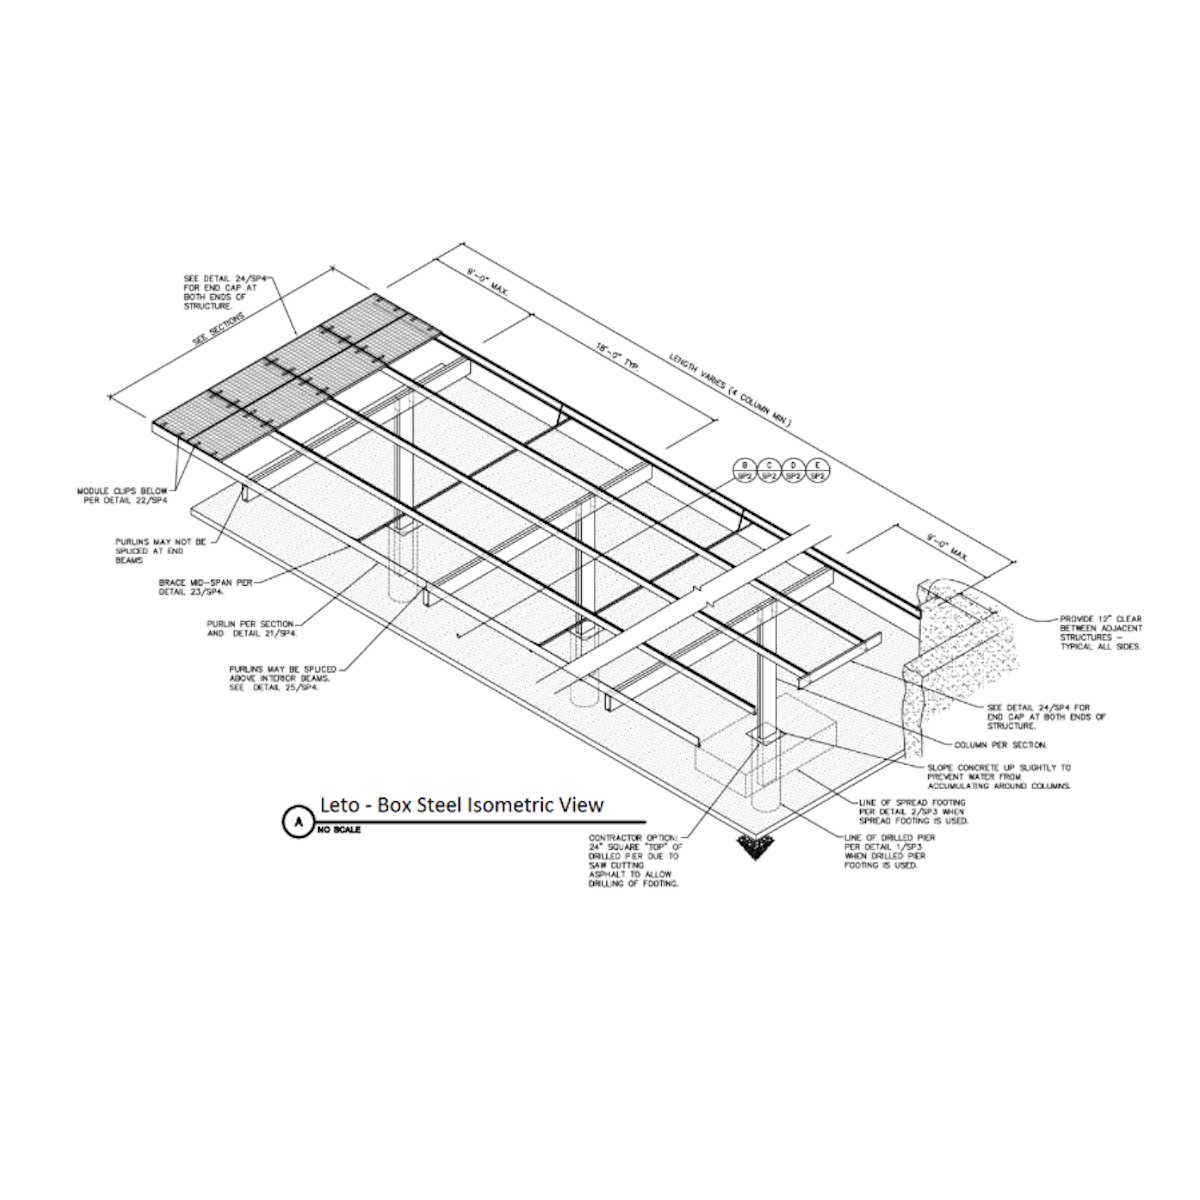 Orion Leto Double Column Single Cantilever Carport Wiring Diagram For Fluorescent Lights With